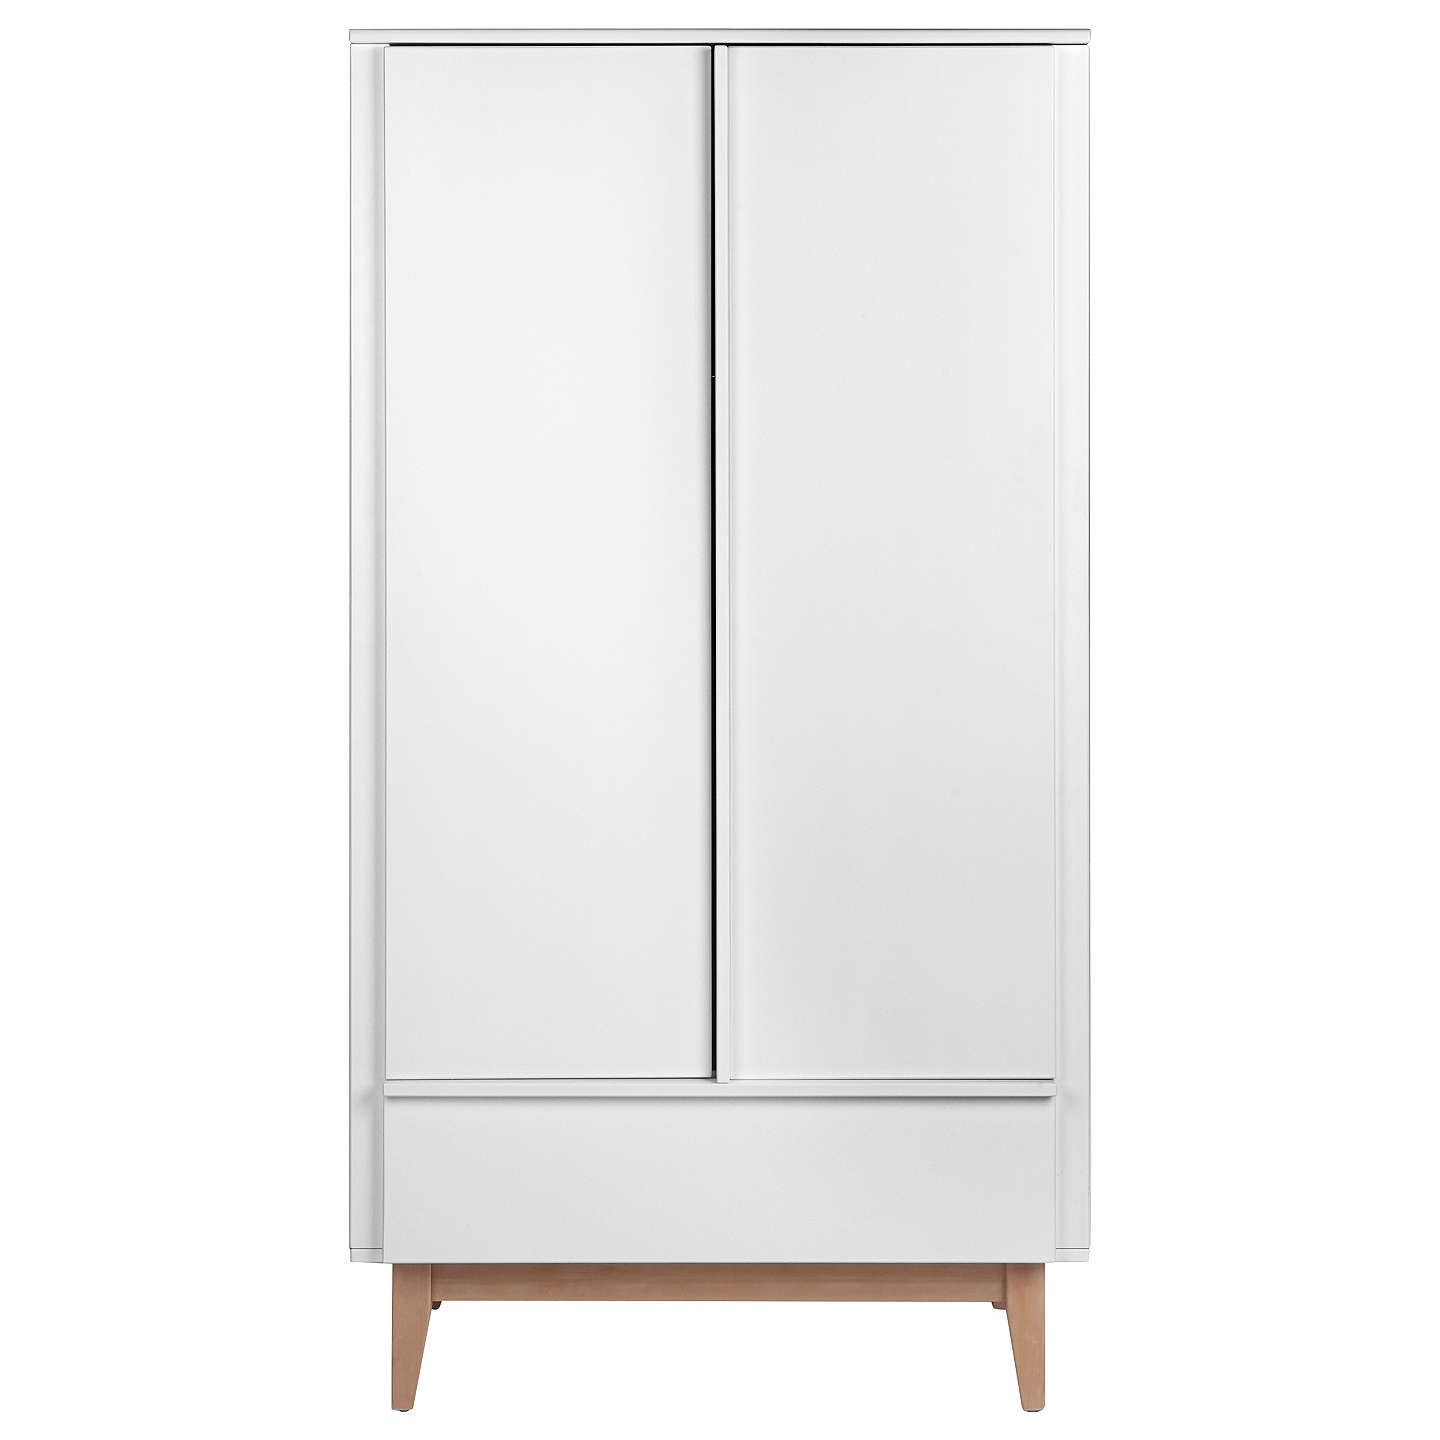 BuyTroll Scandy Wardrobe, White/Wood Online at johnlewis.com